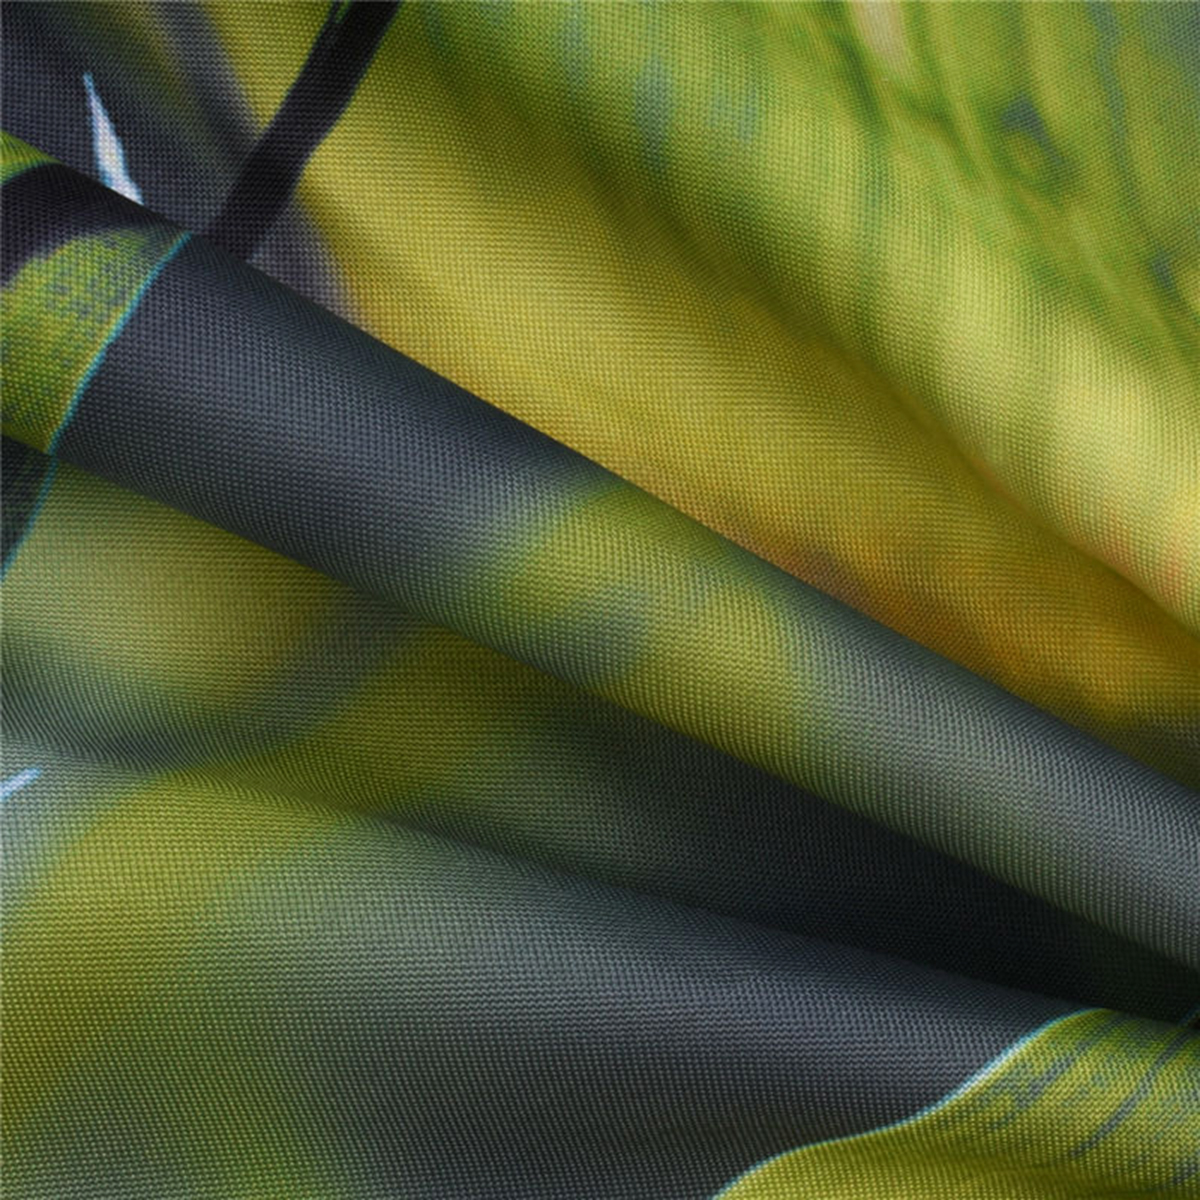 Zen Bamboo Fabric Shower Curtain Spa Stones Tranquility Bathroom Decor Polyester